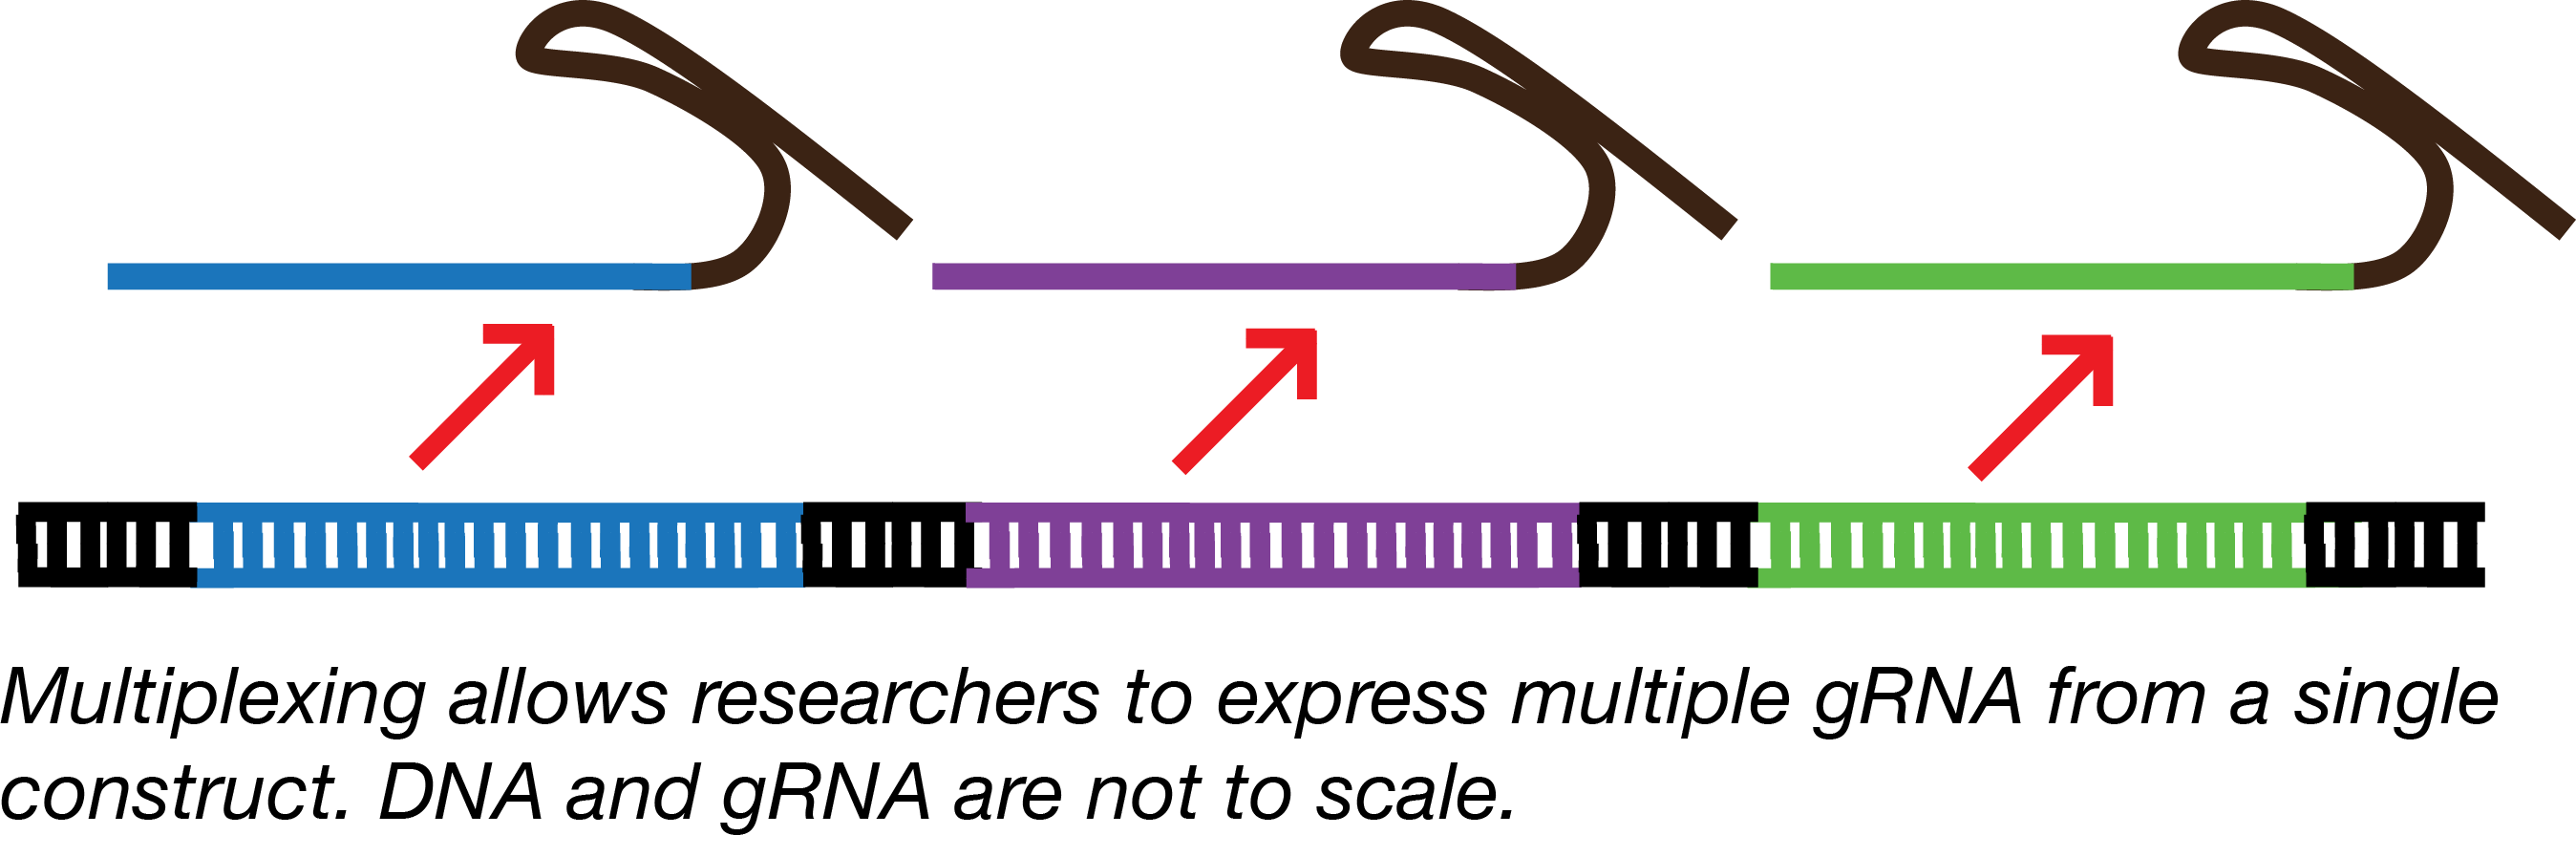 Multiplex gRNA means several gRNAs are expressed for a single construct